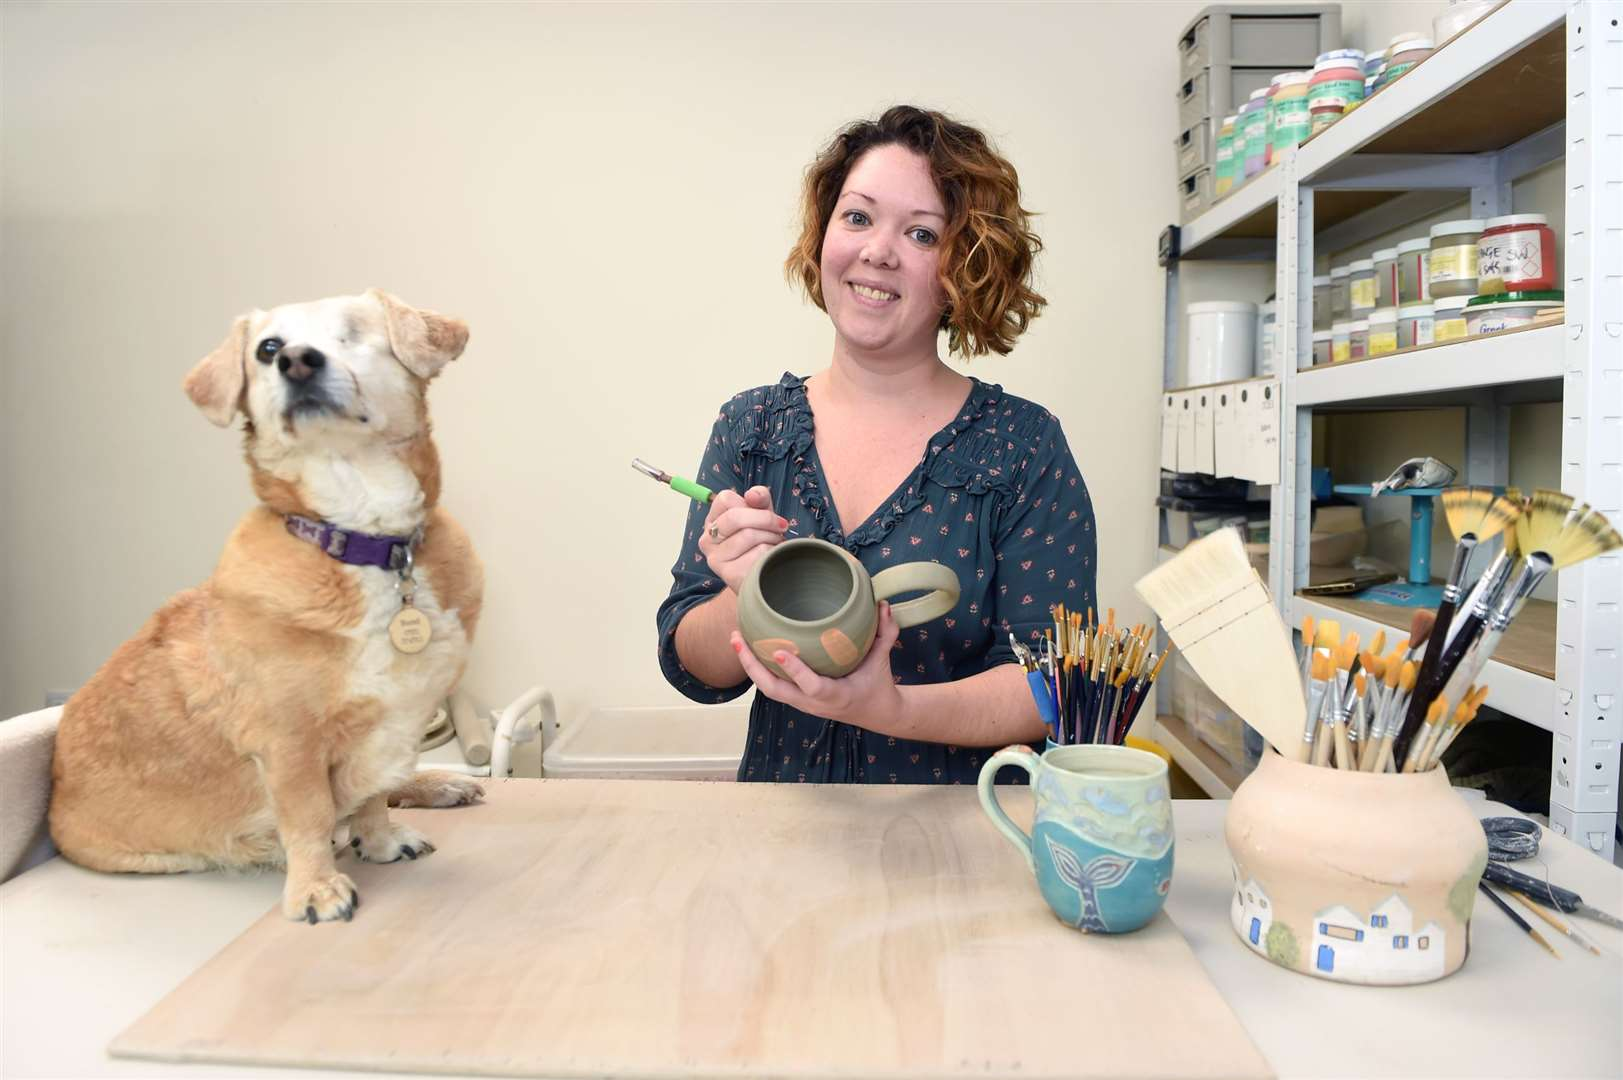 Rachel Pedersen will be showcasing her ocean-themed pottery work during an upcoming open studios event in Sudbury.Pictured: Rachel with her dog BluebellPICTURE: Mecha Morton (42290161)